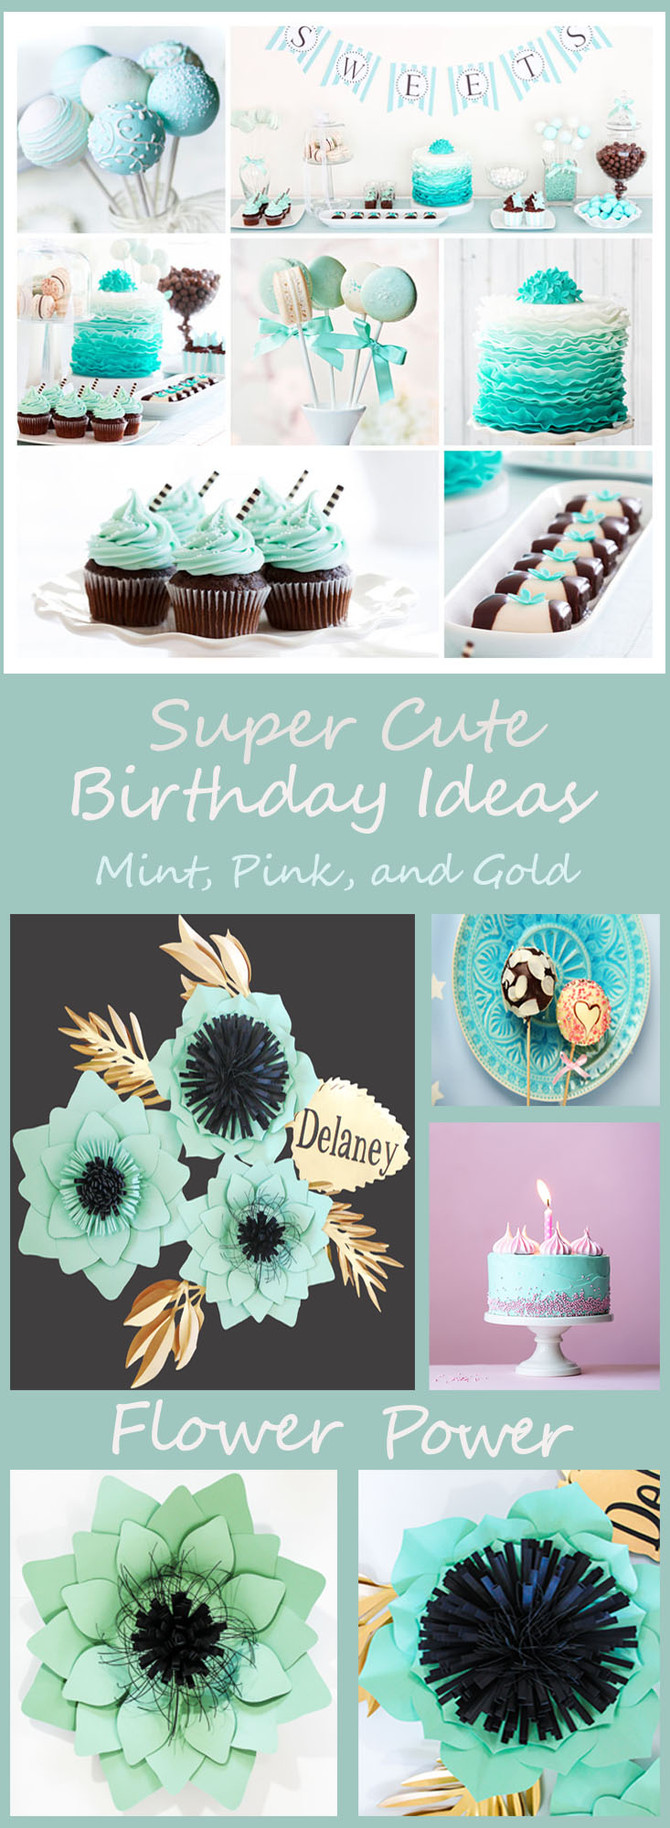 Birthday Ideas: Mint, Pink, and Gold